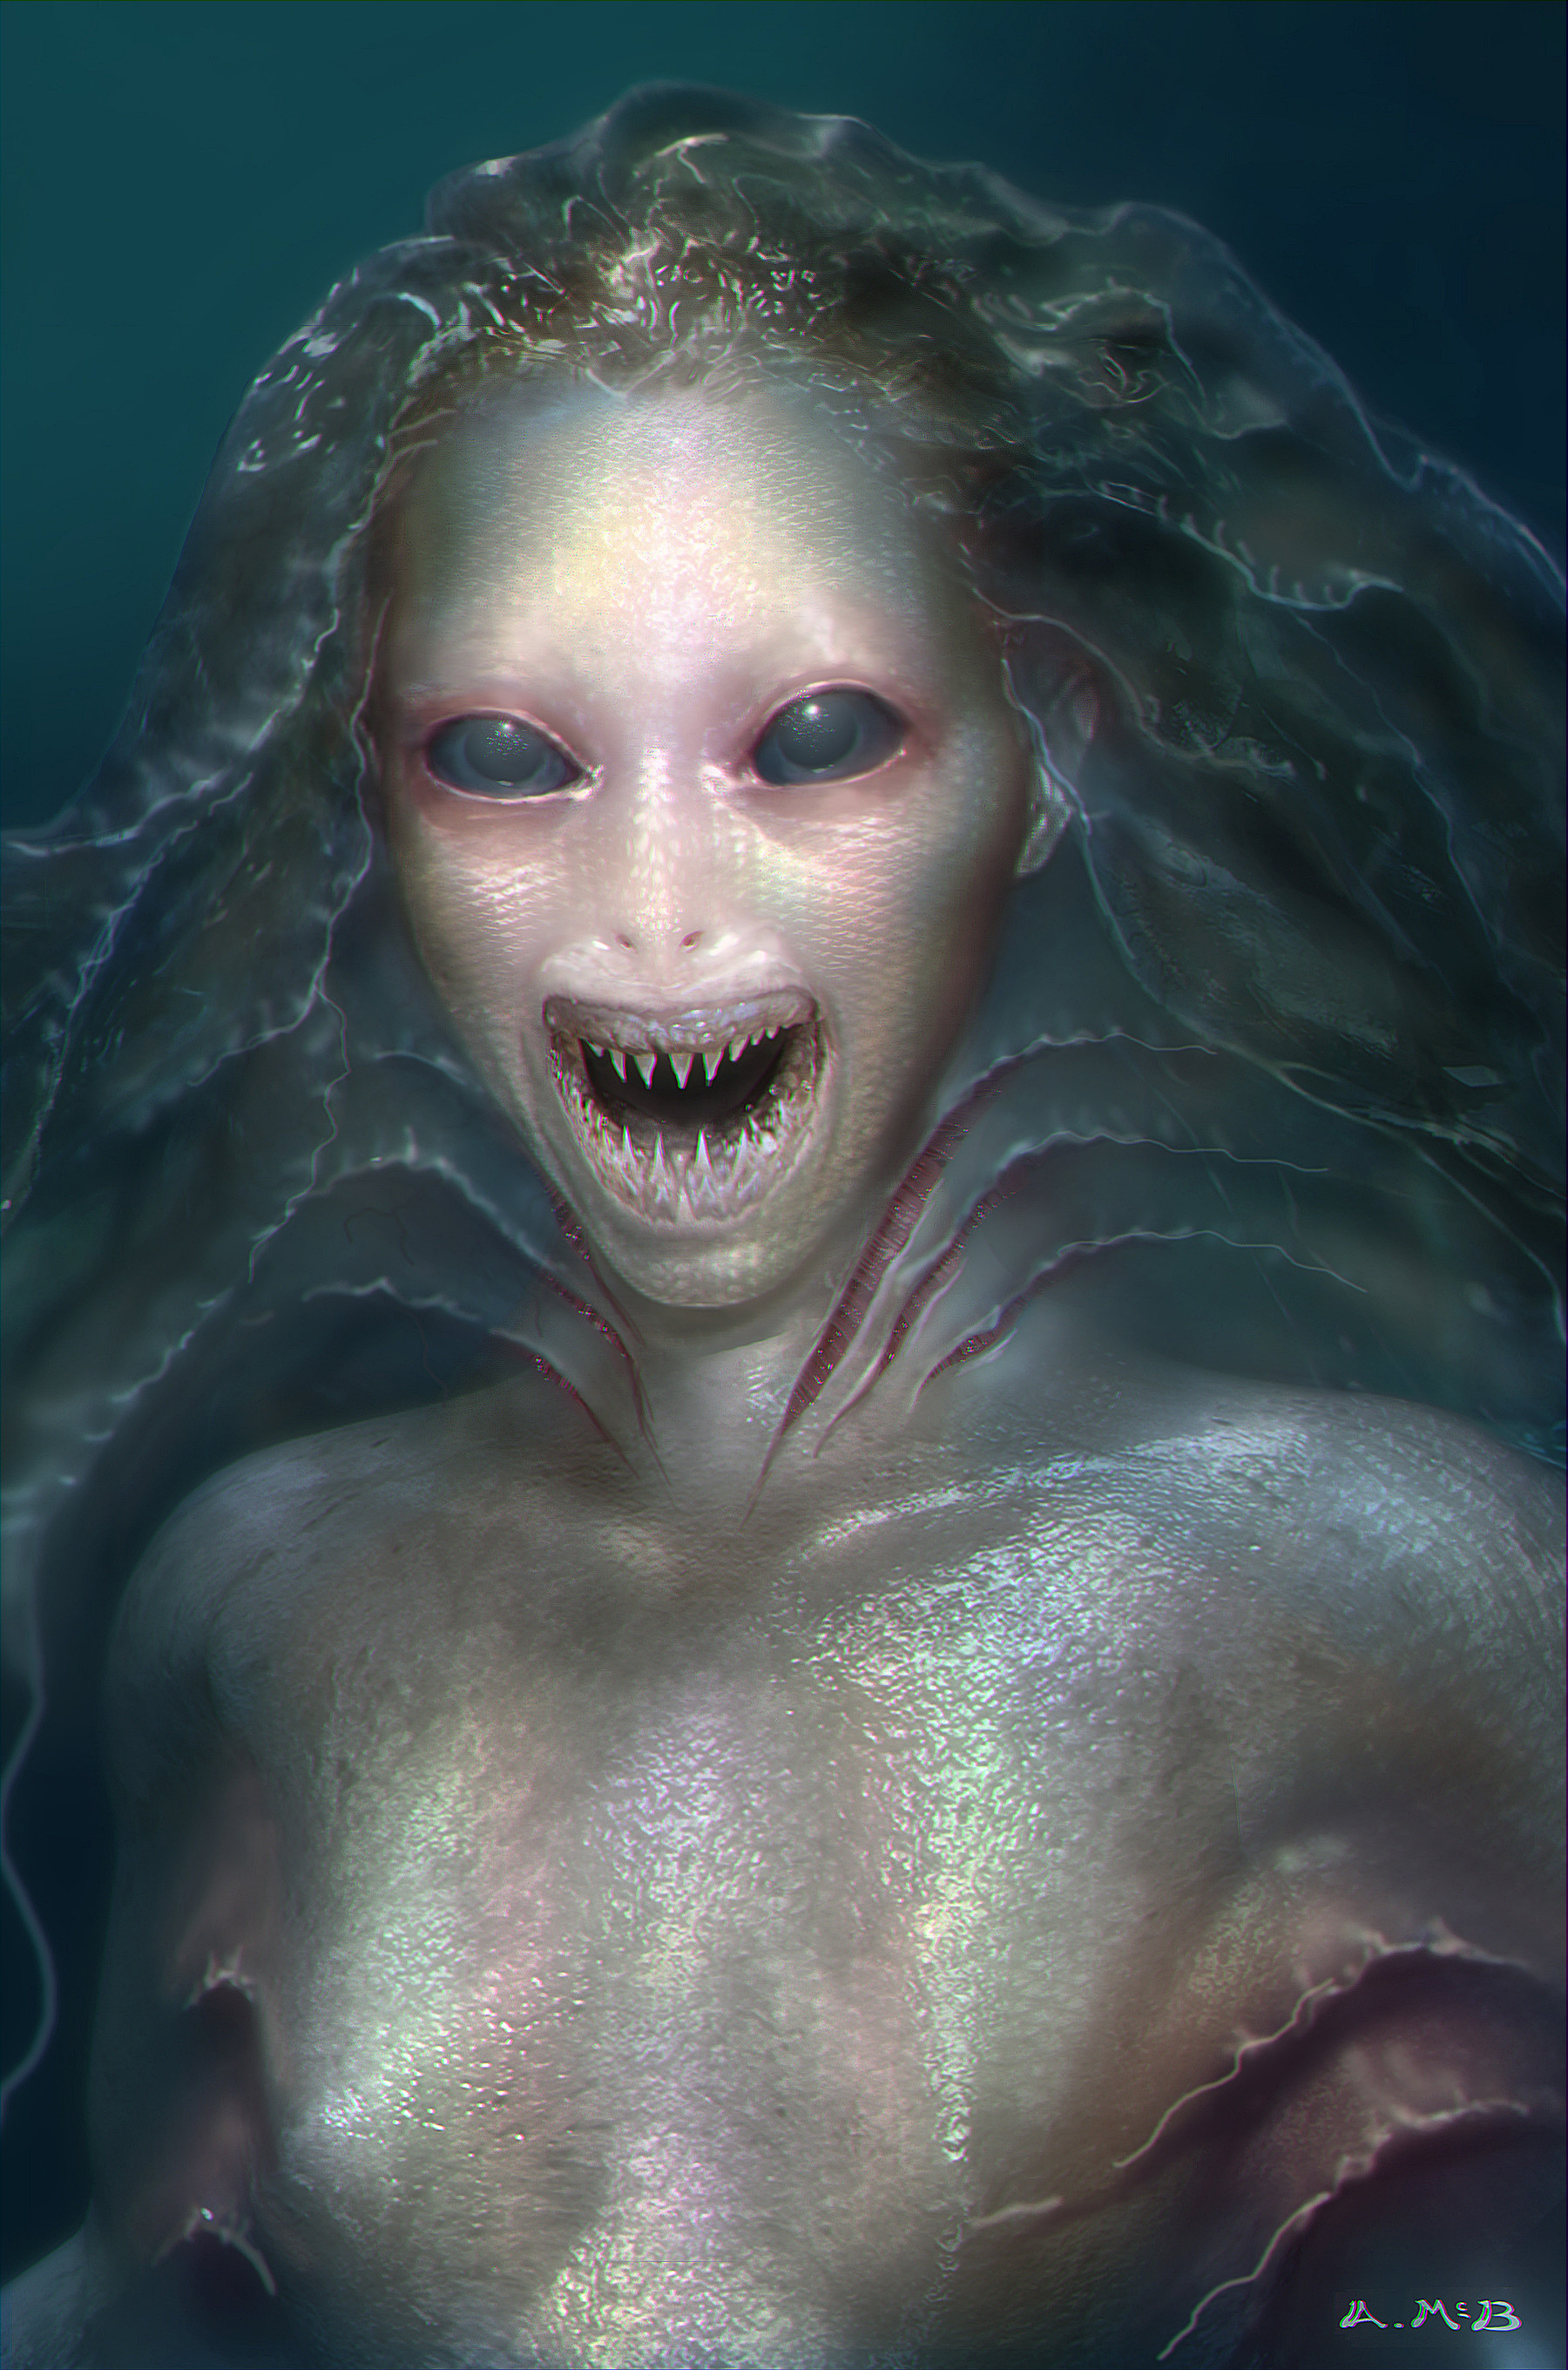 Aaron mcbride ugly mermaid version1a open mouth